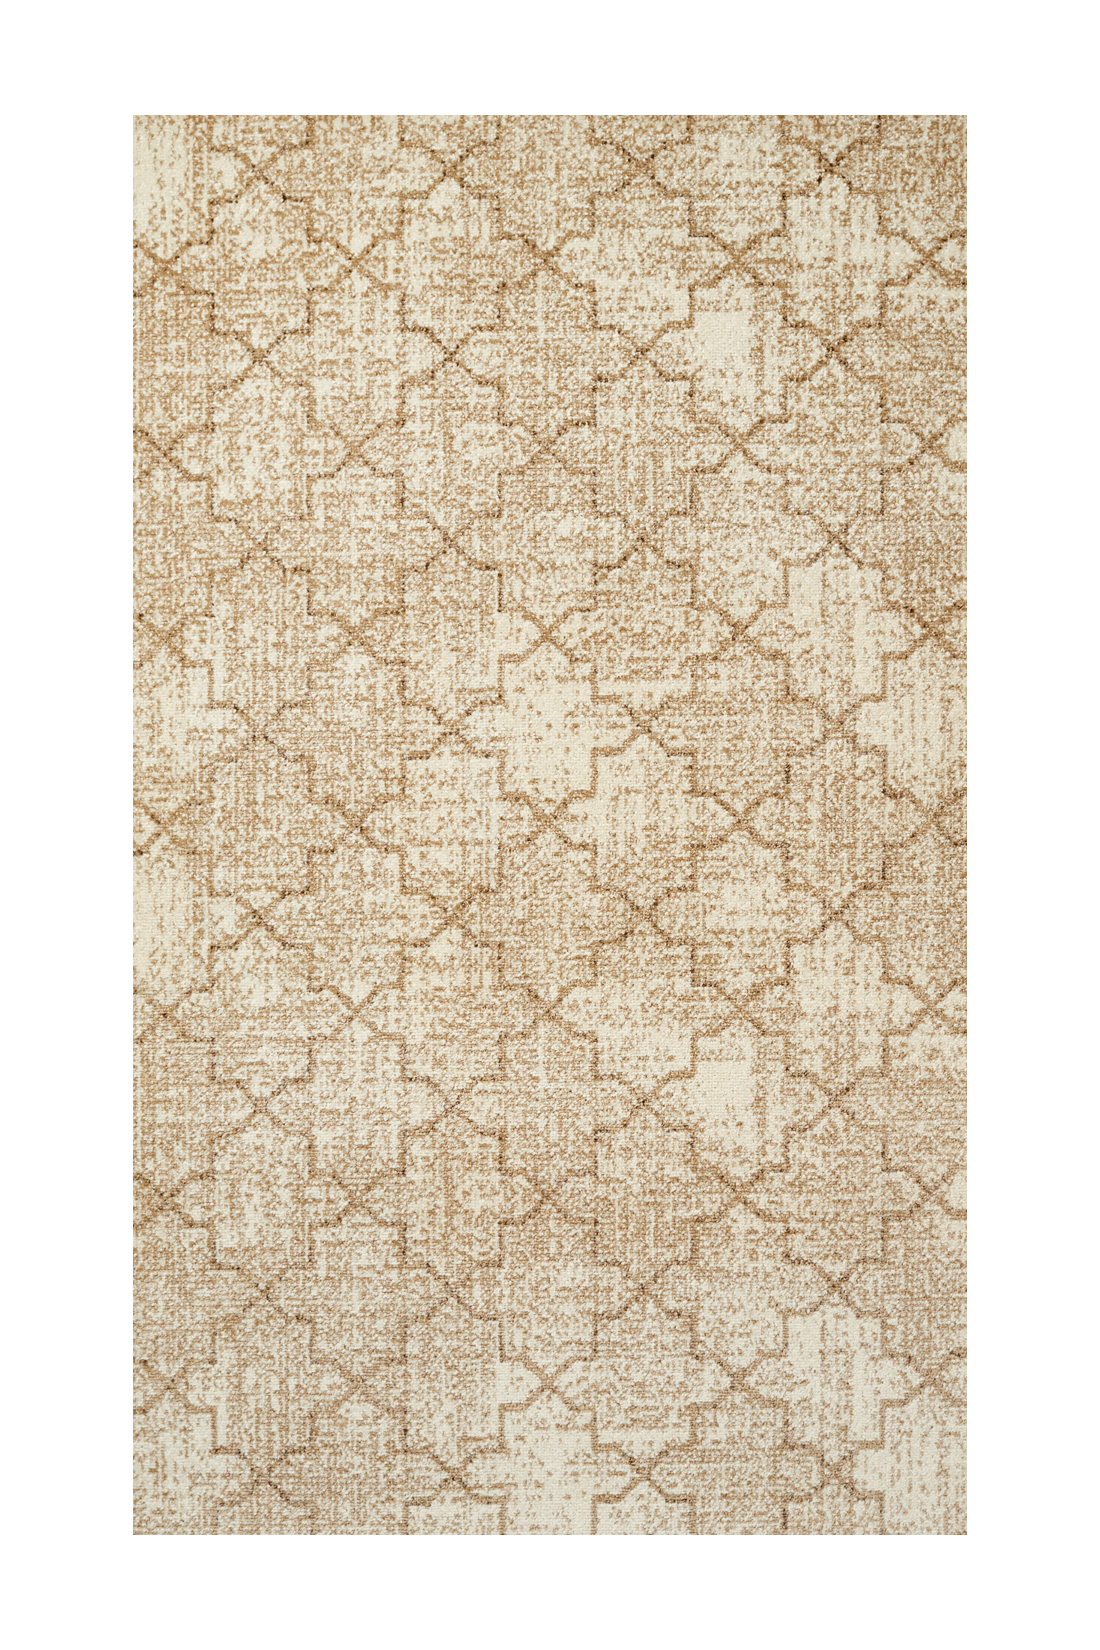 Rug texture png. Create a moroccan tile